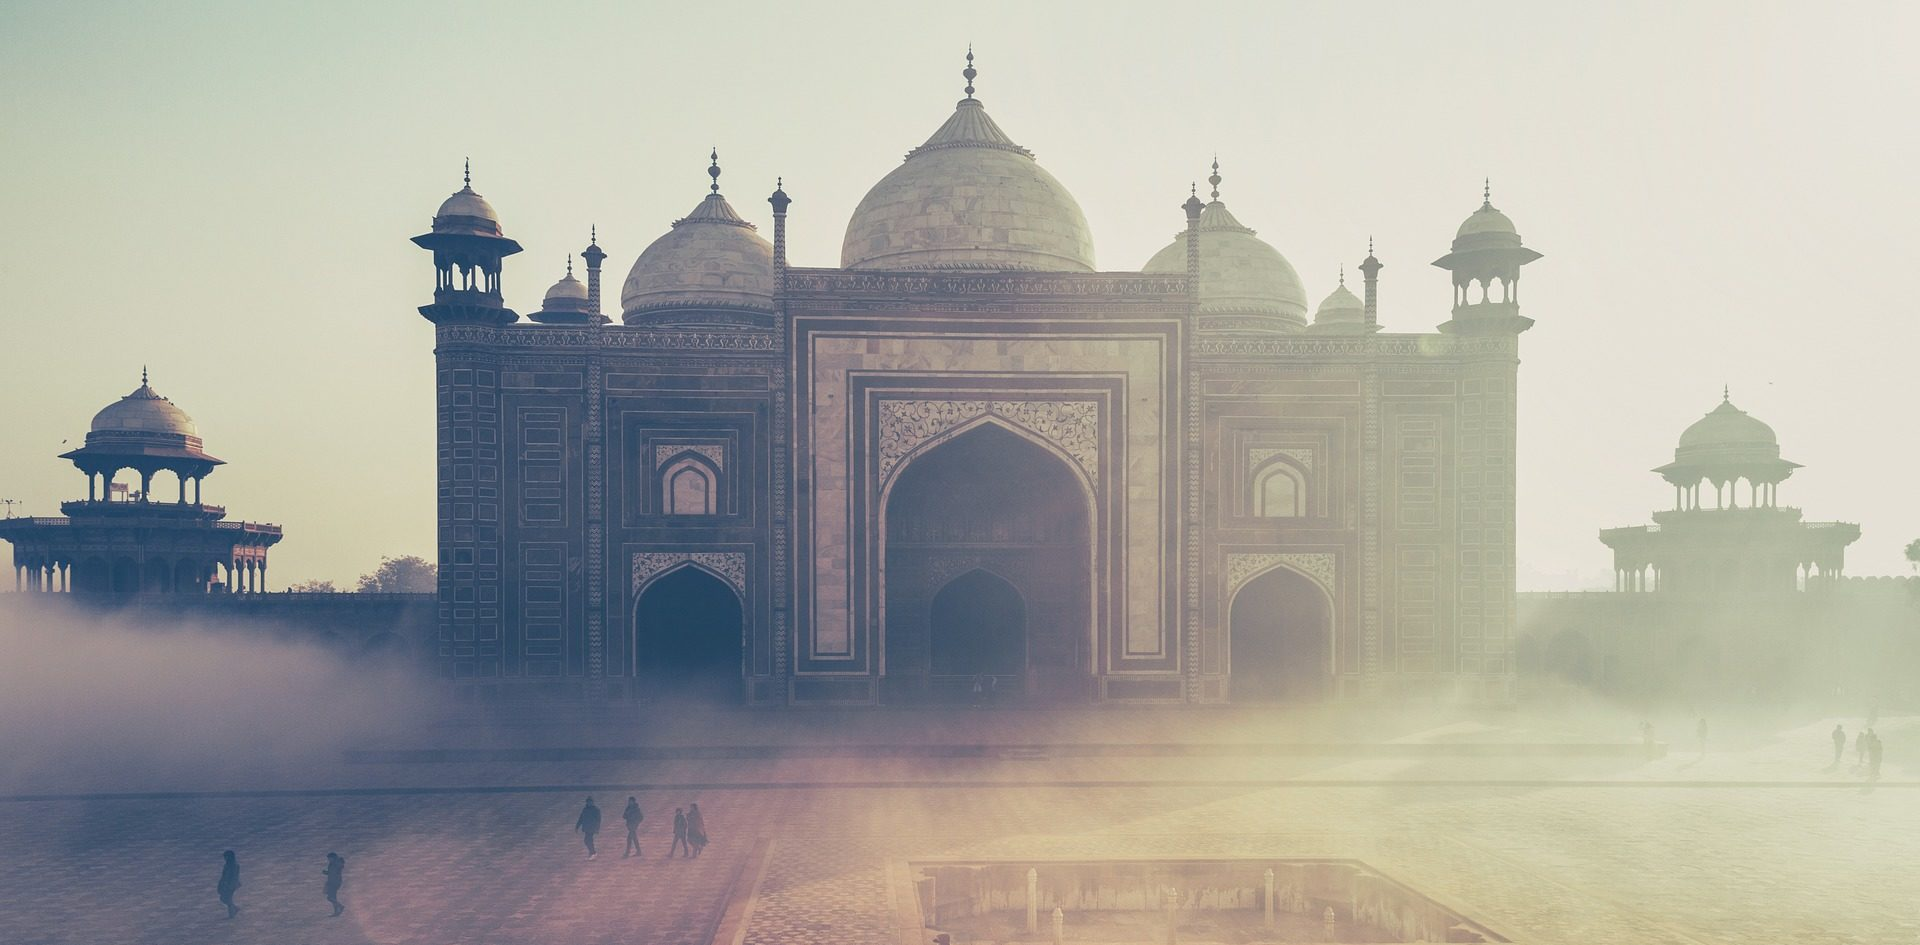 Beatriz's One Month Backpacking trip across India